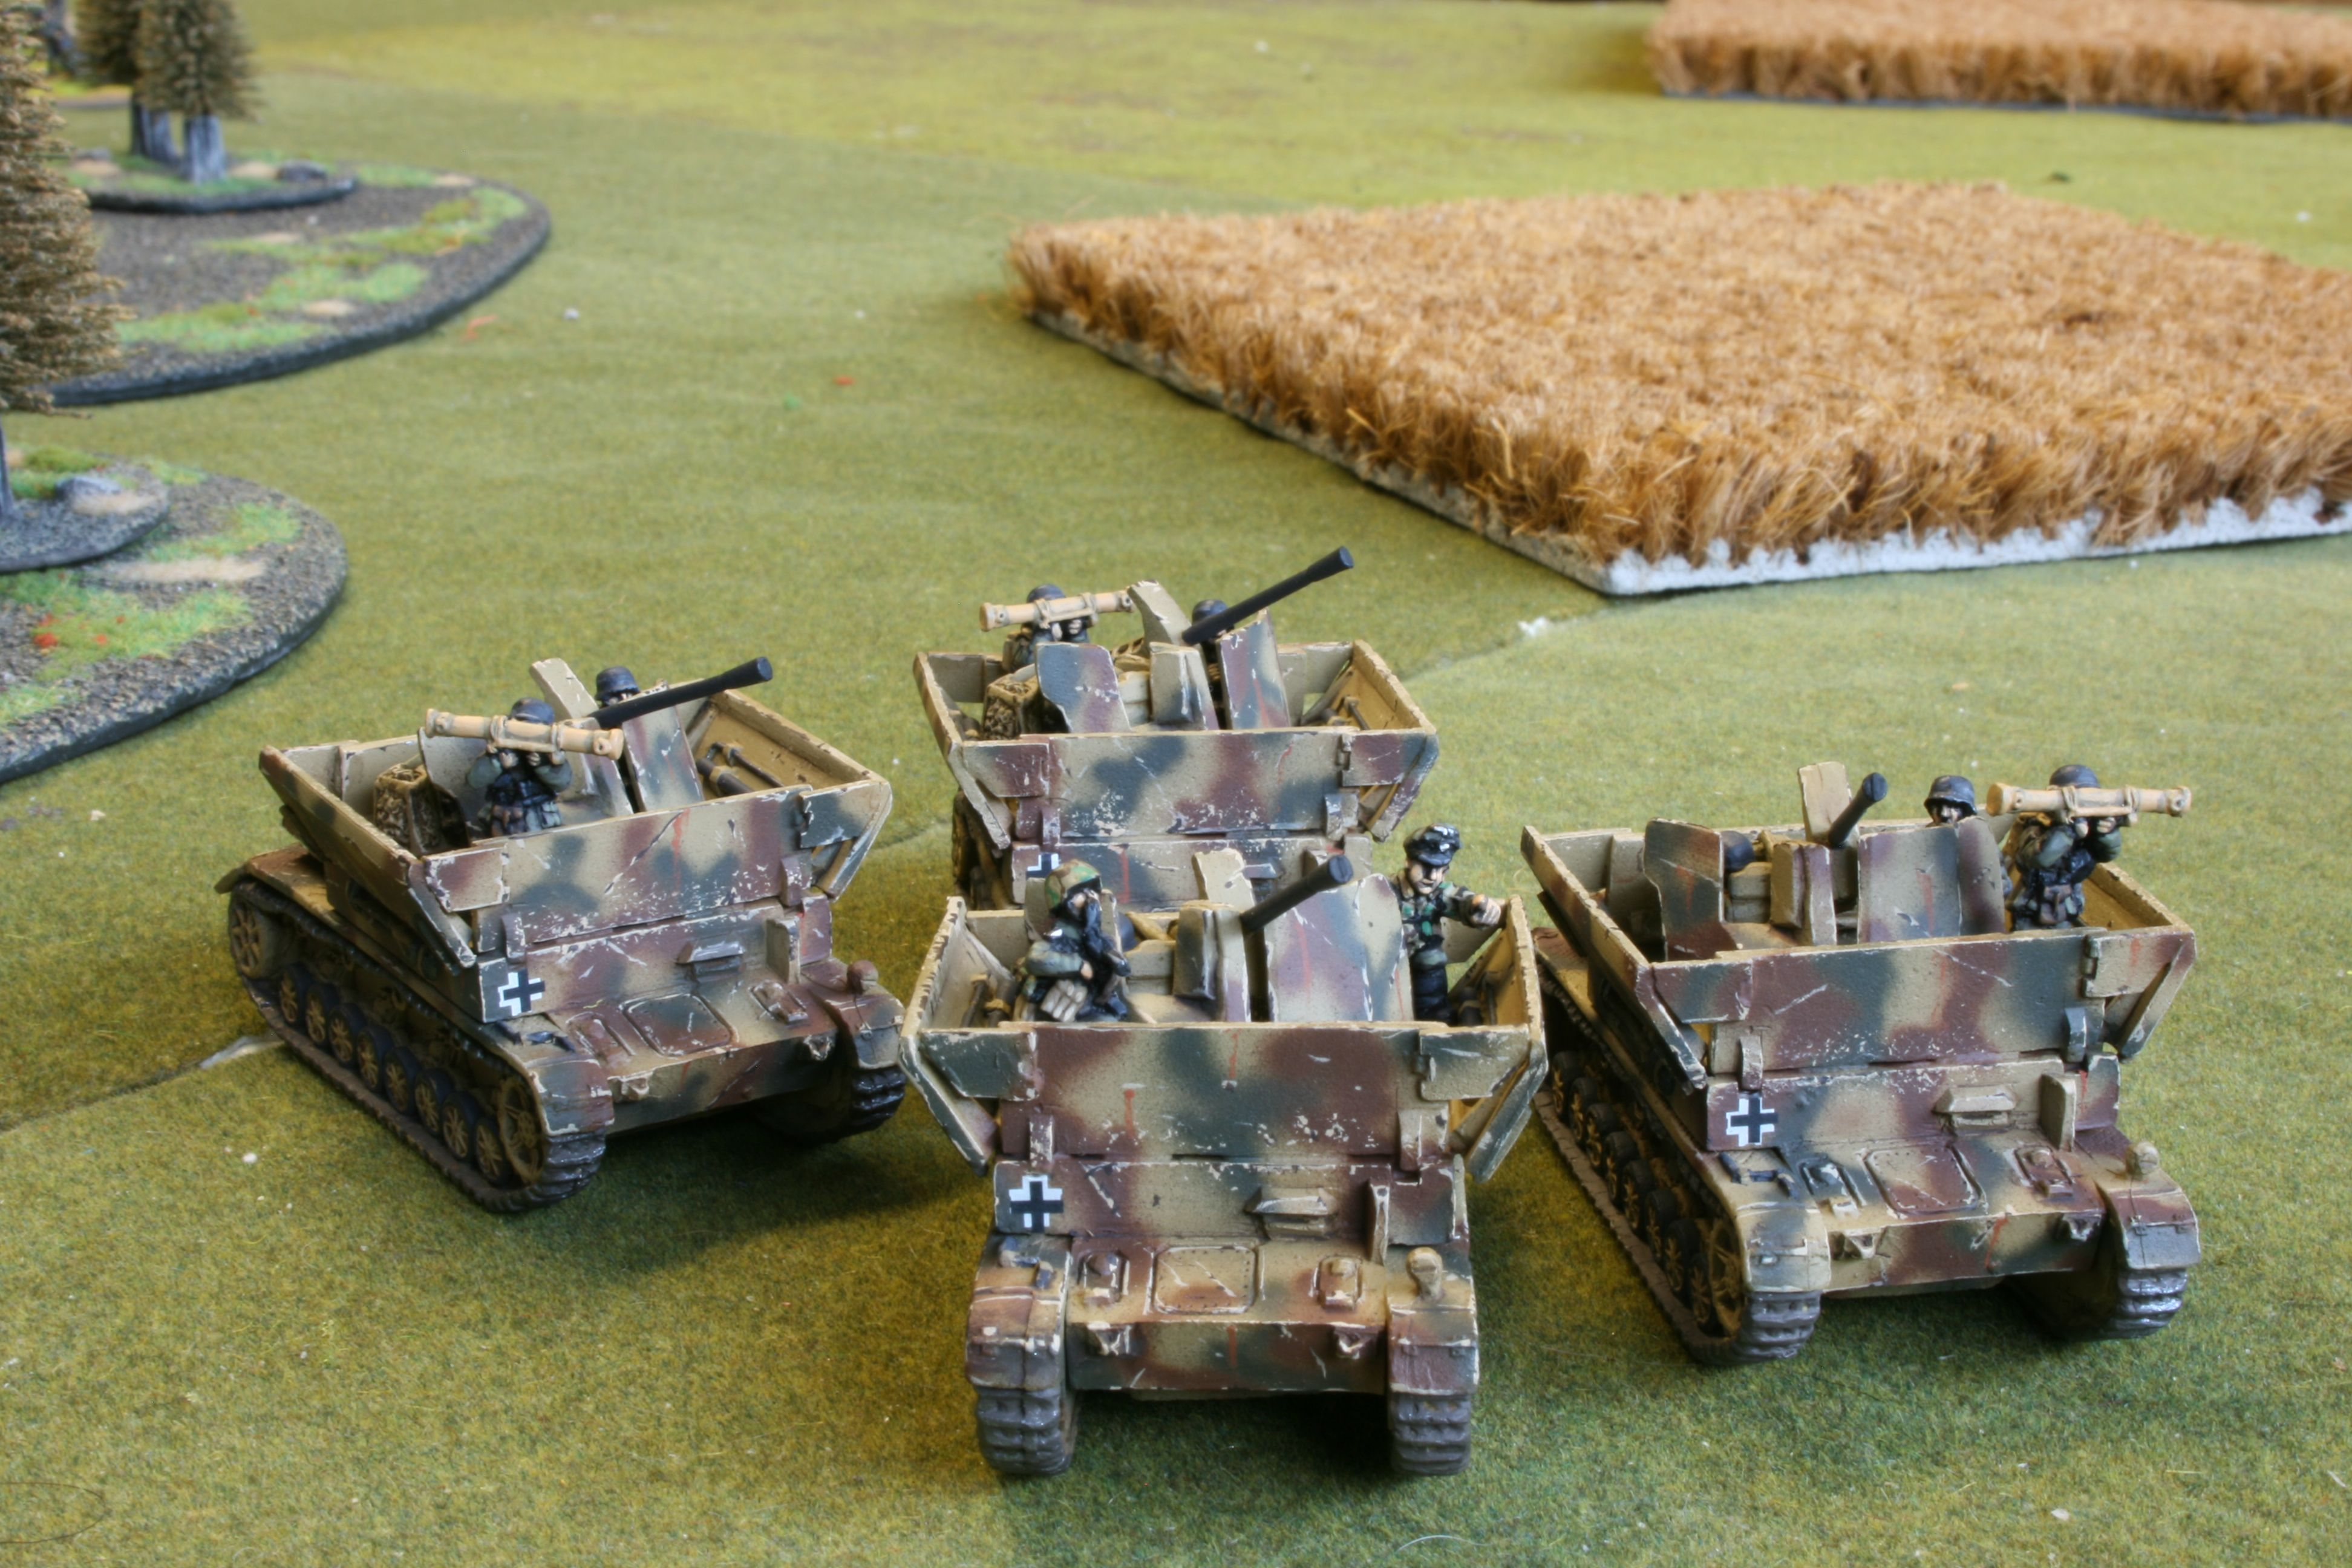 Mobelwagen platoon for Flames of War. Painted by Panzer Schule for Worlds at War.